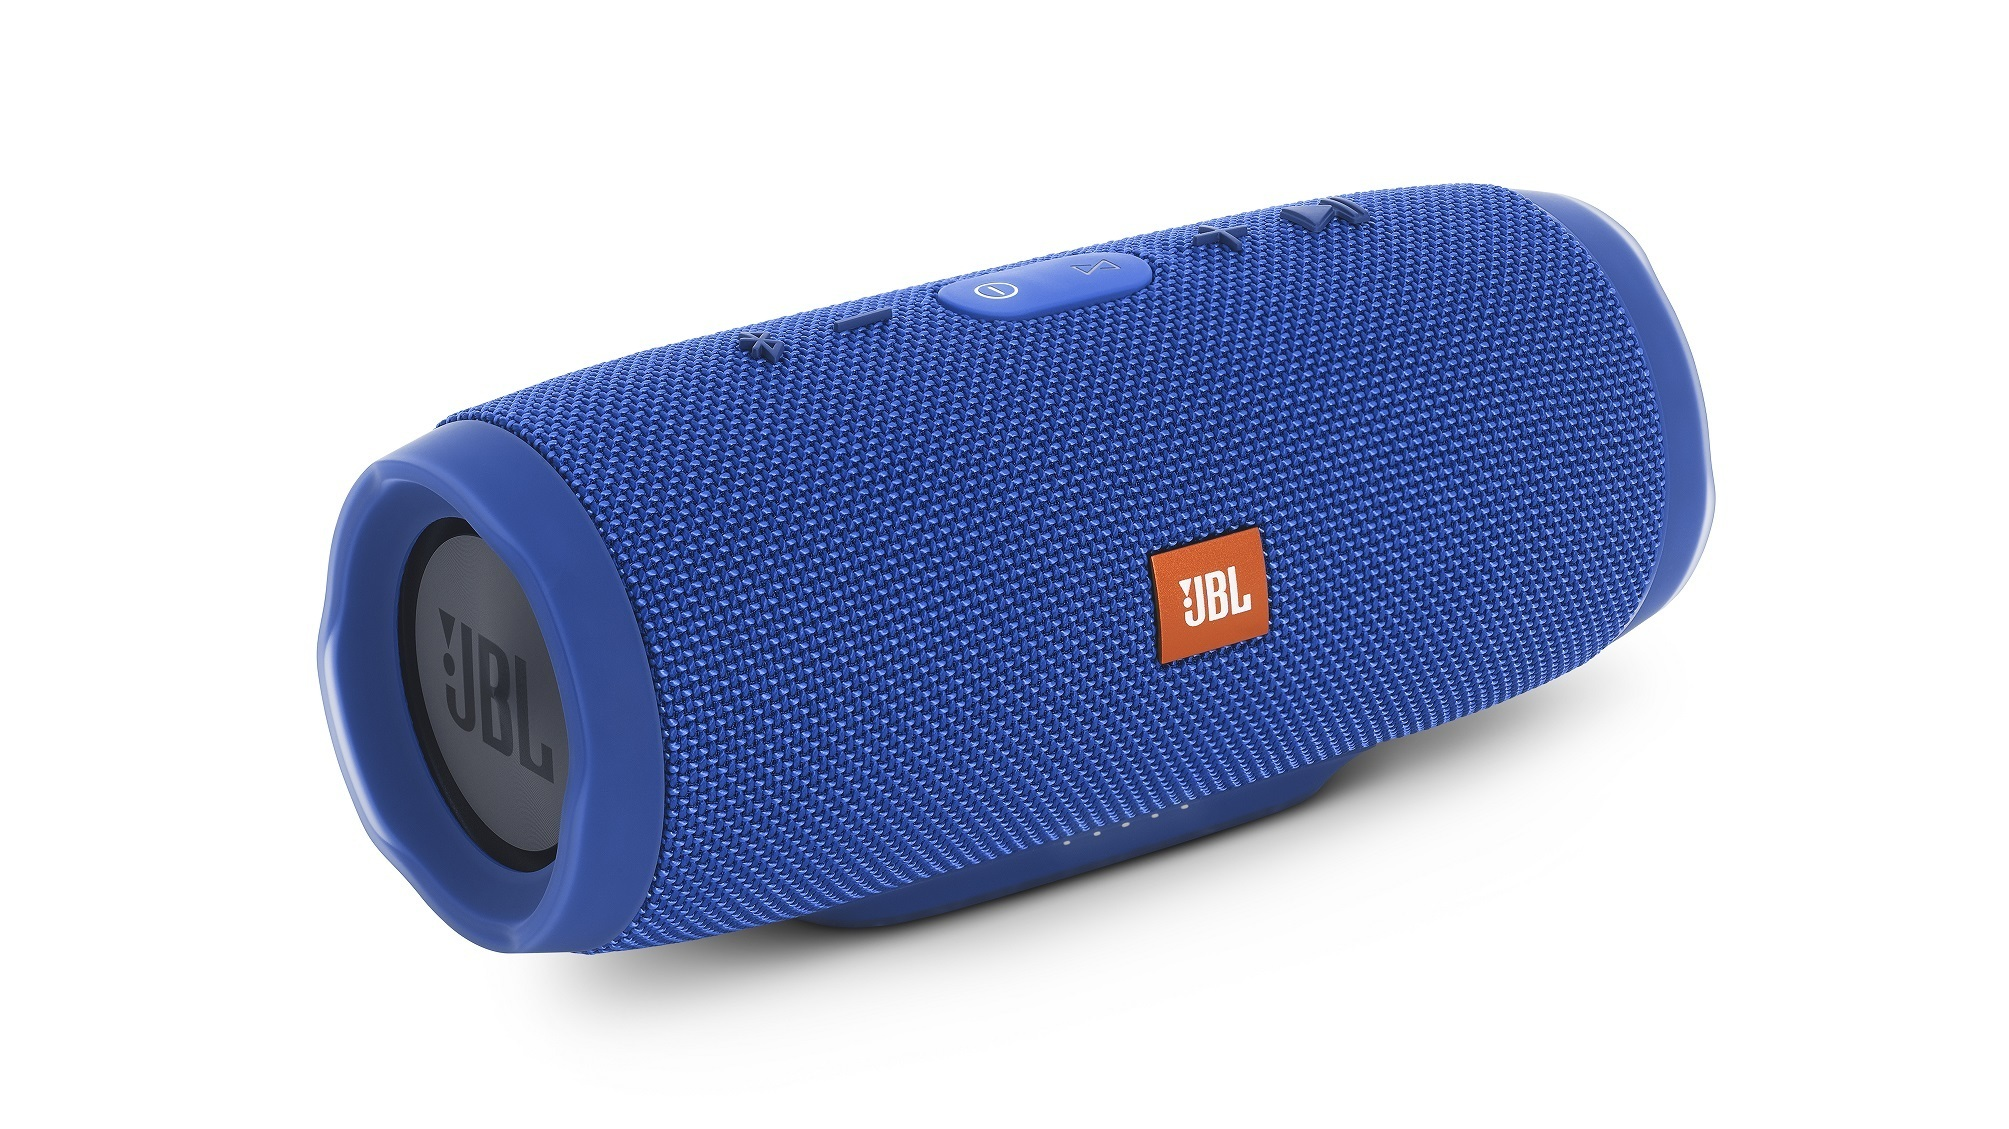 Lets Talk Bluetooth Speakers Headphone Reviews And Discussion Xiaomi Speaker Cube Jbl Charge3 Blue Hero X2 100666750 Orig